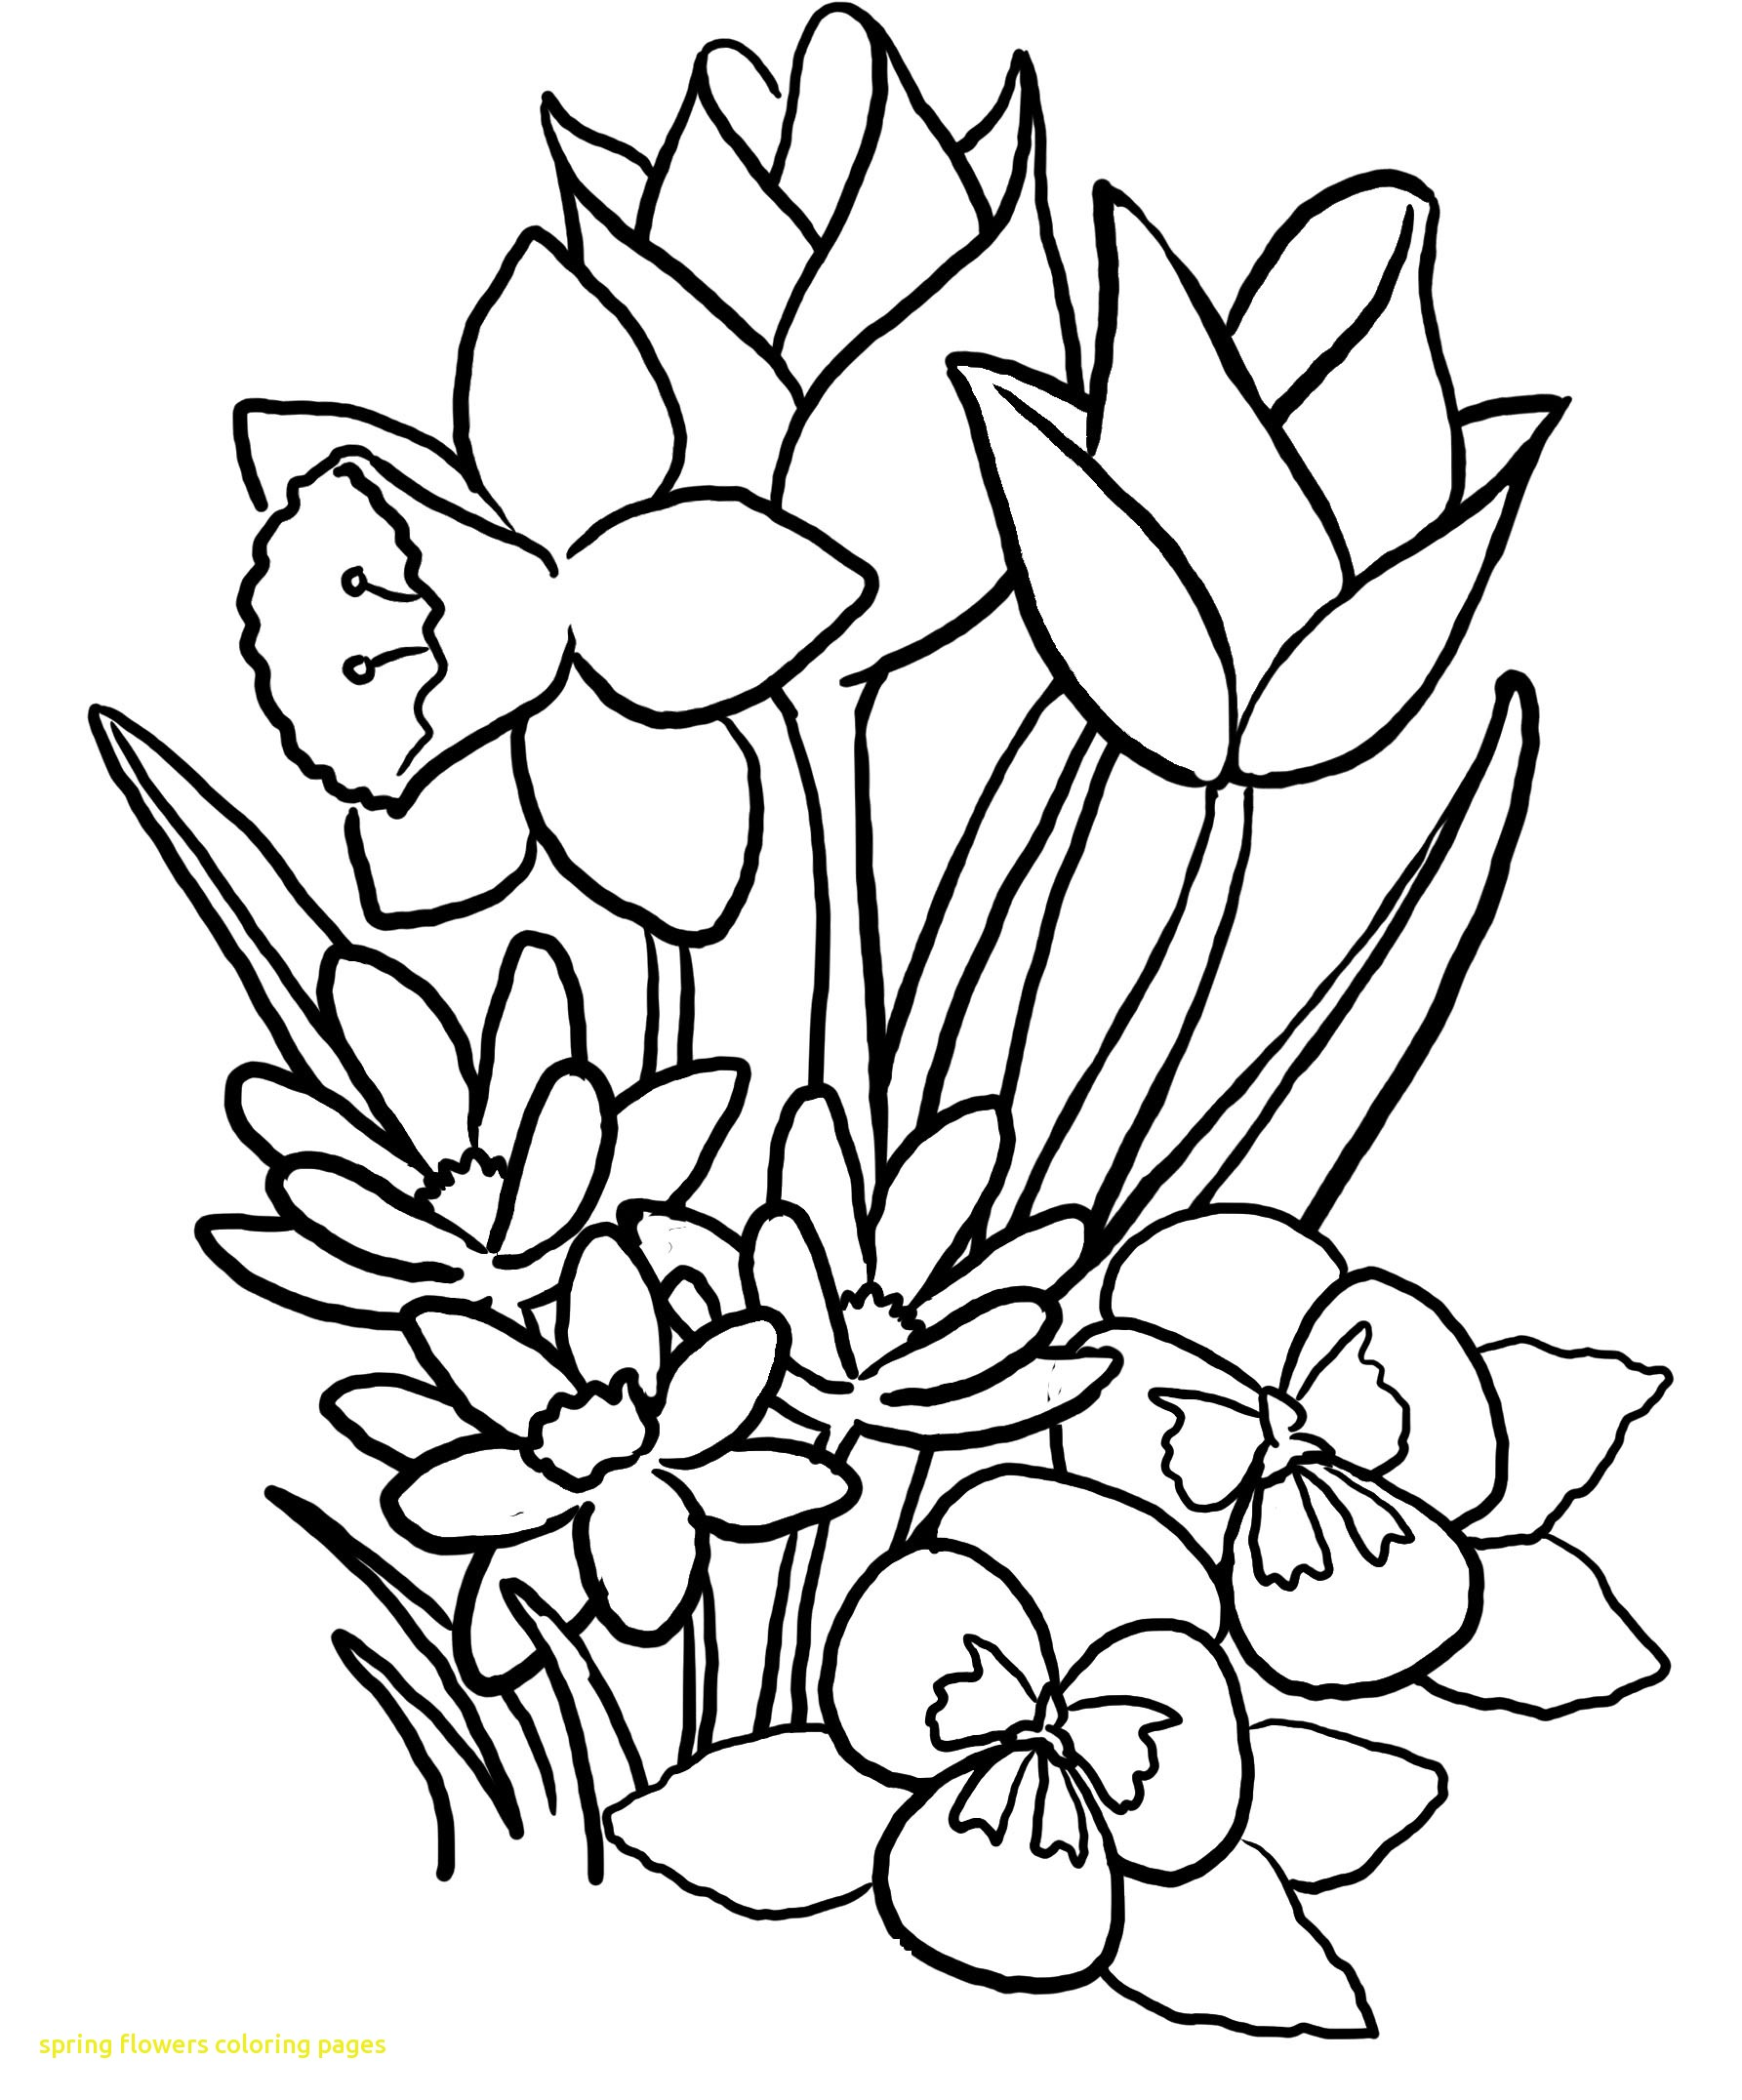 1785x2152 Coloring Pages For Spring Flowers Spring Flowers Coloring Pages